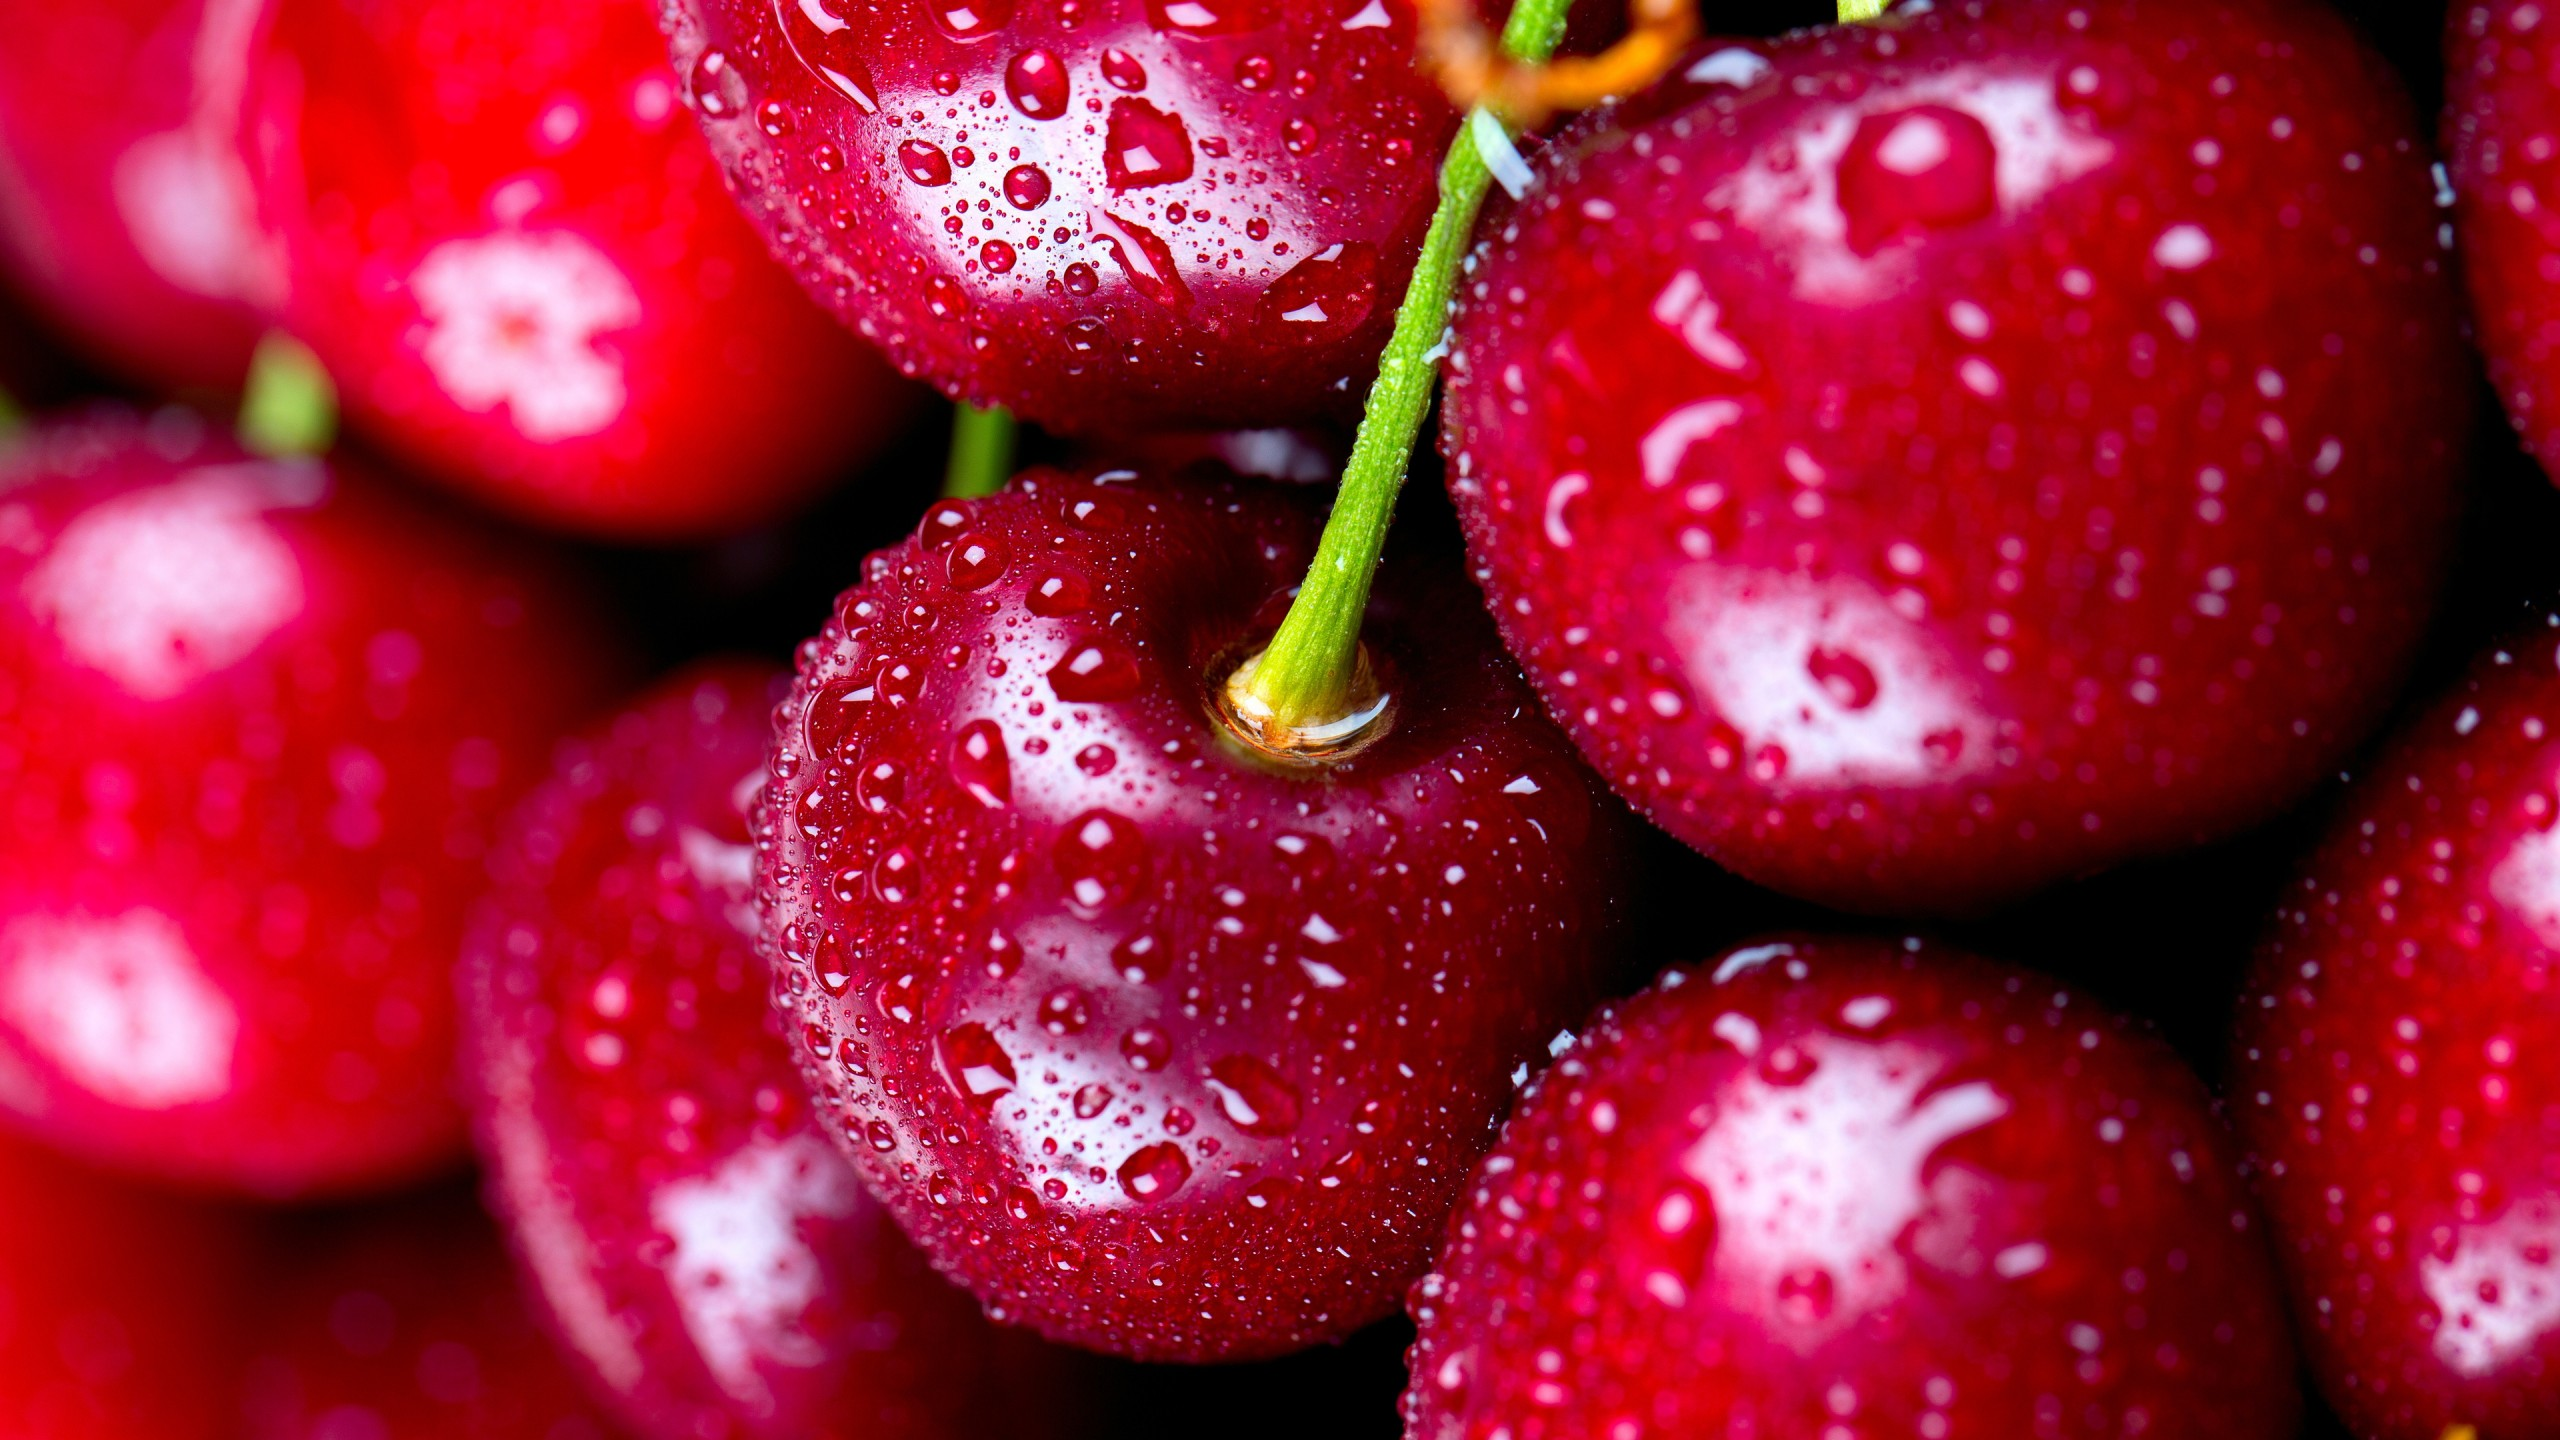 Wallpaper Cherries Delicious 4k Food 15366